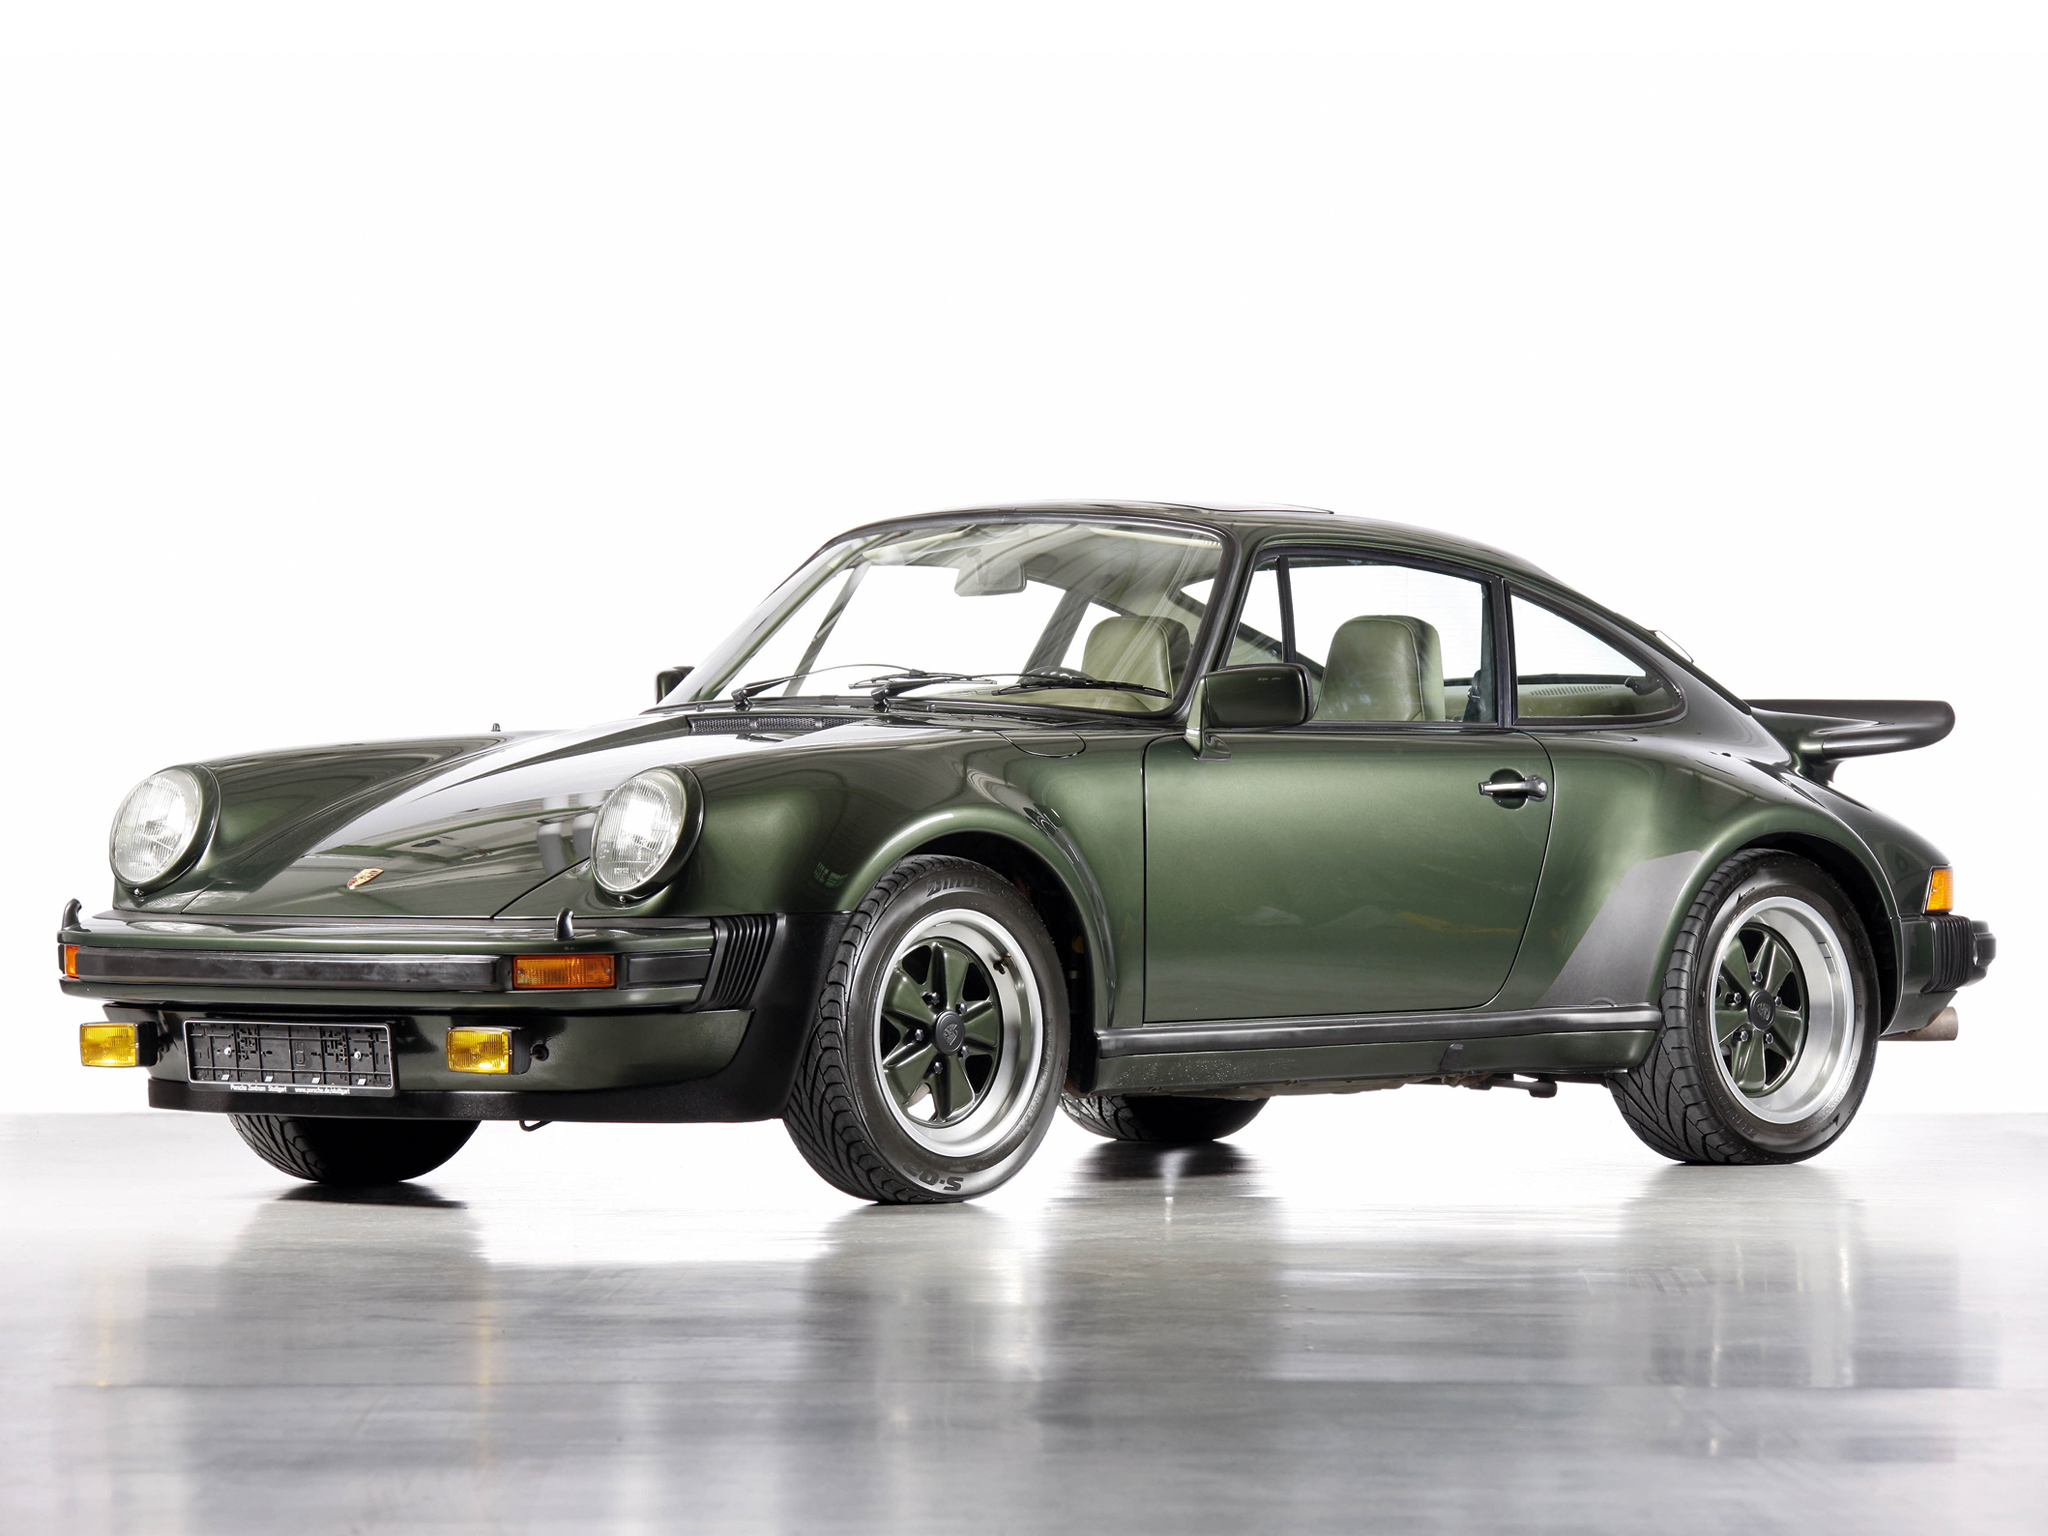 Porsche 911 Turbo Coupe 1978